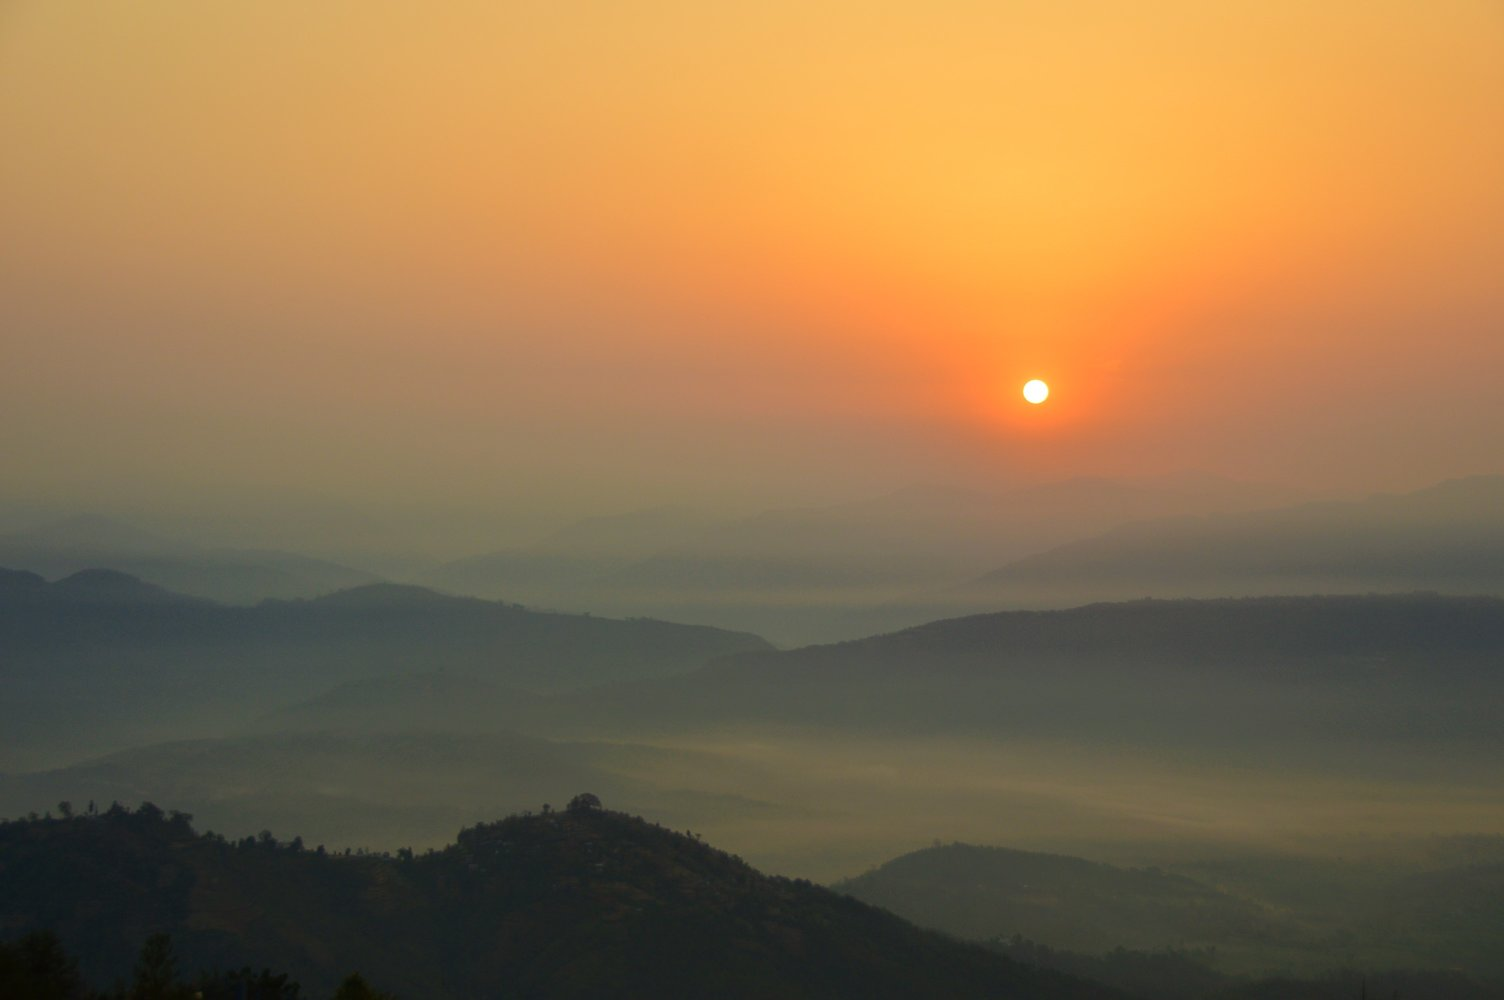 sunrise over kathmandu valley from dwarika's resort dhulikhel